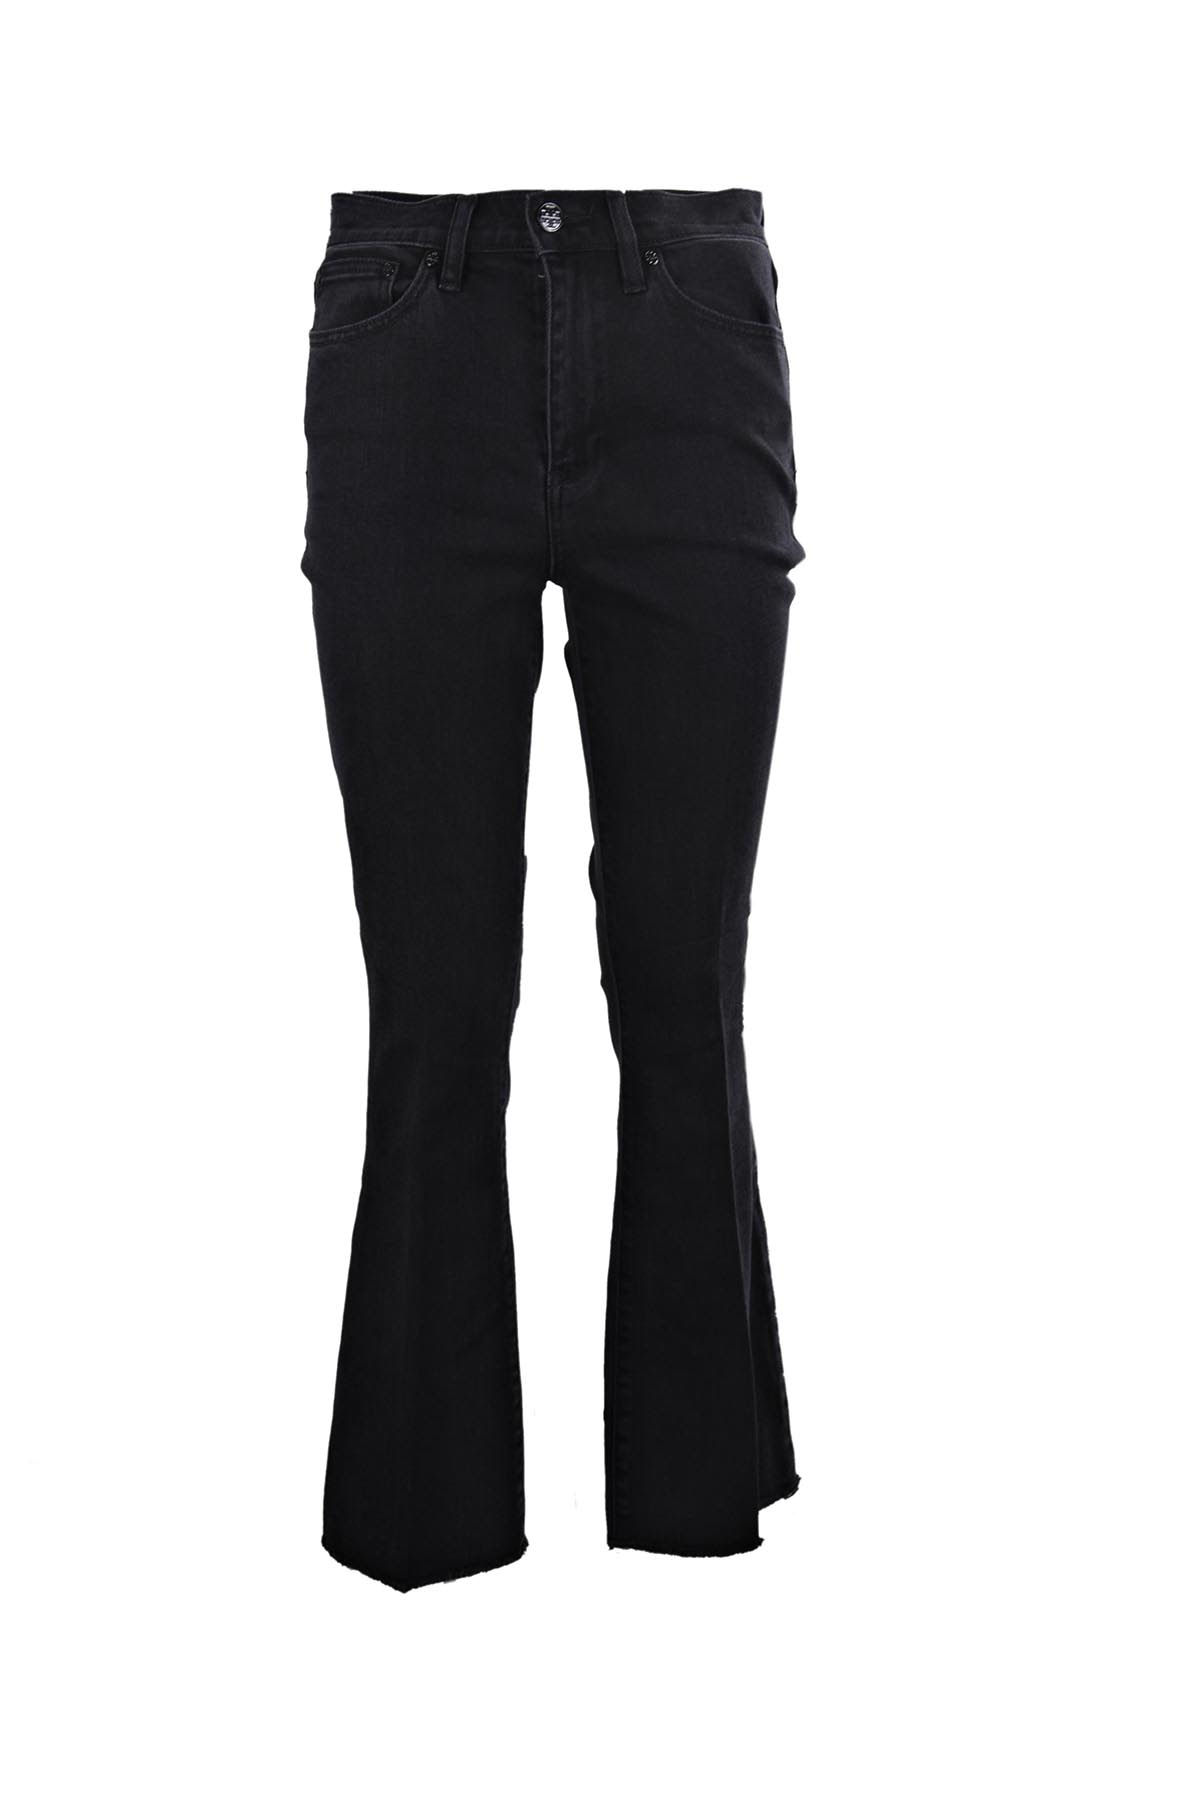 Wade frayed flare jeans - Black Tory Burch